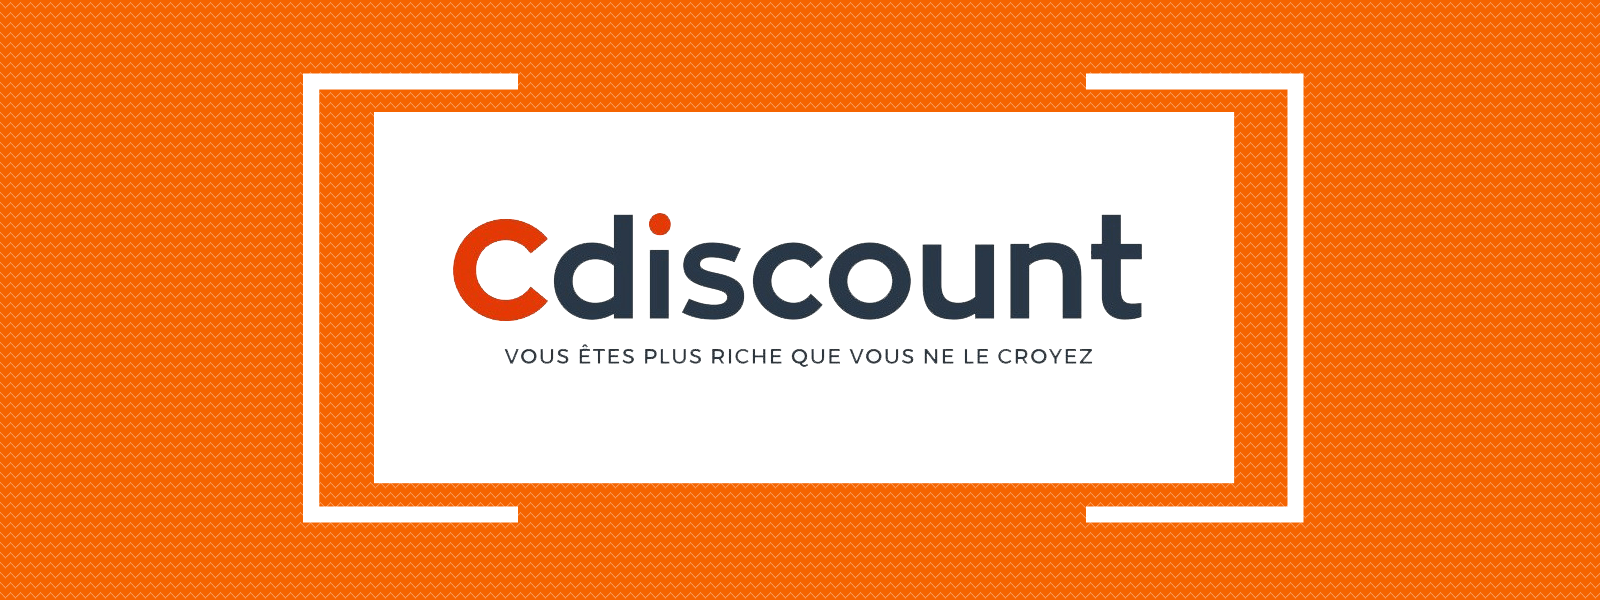 cdiscount integration